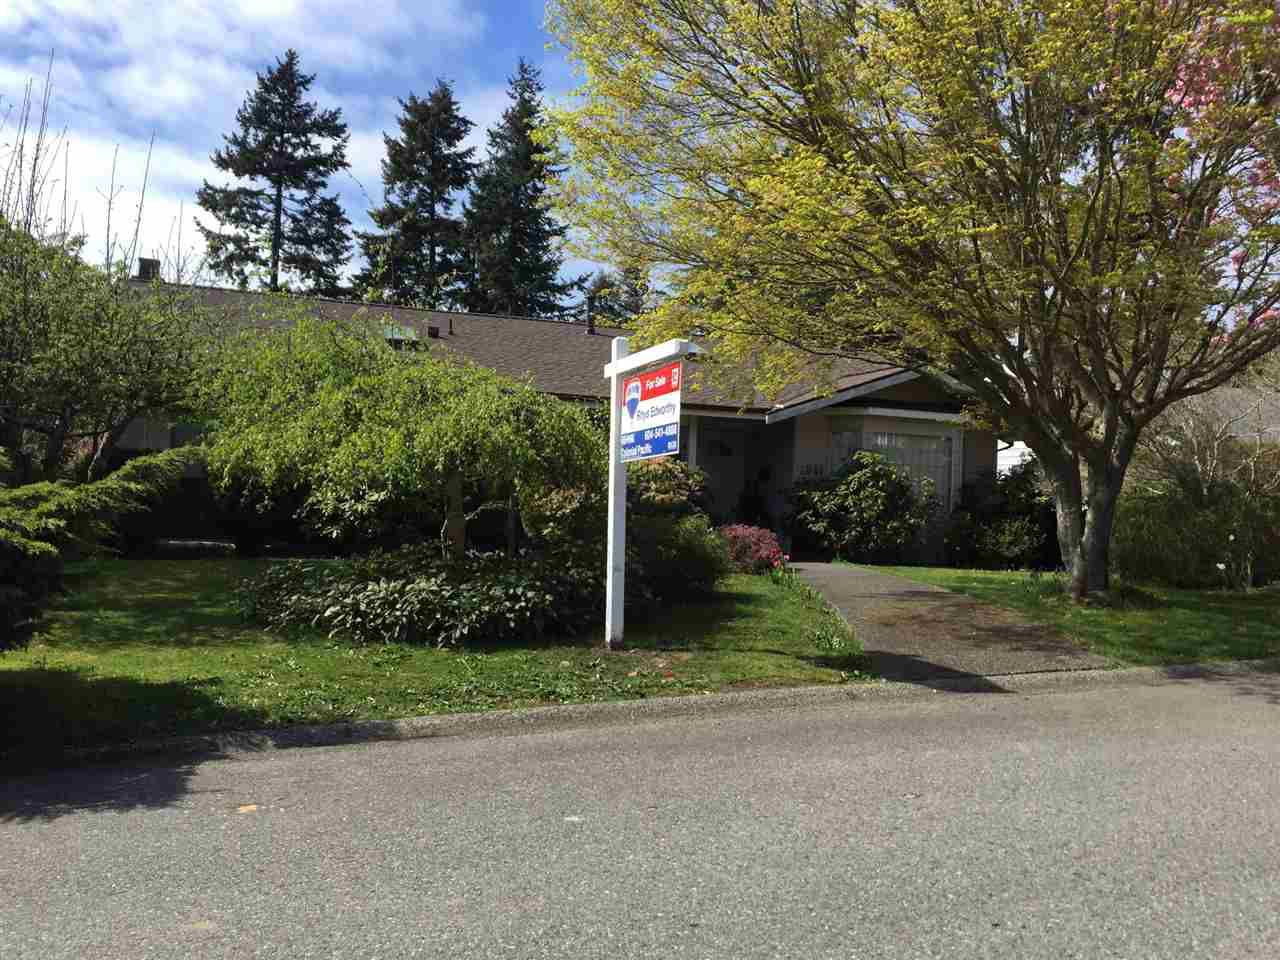 """Main Photo: 1841 128A Street in Surrey: Crescent Bch Ocean Pk. House for sale in """"OCEAN PARK"""" (South Surrey White Rock)  : MLS®# R2059471"""